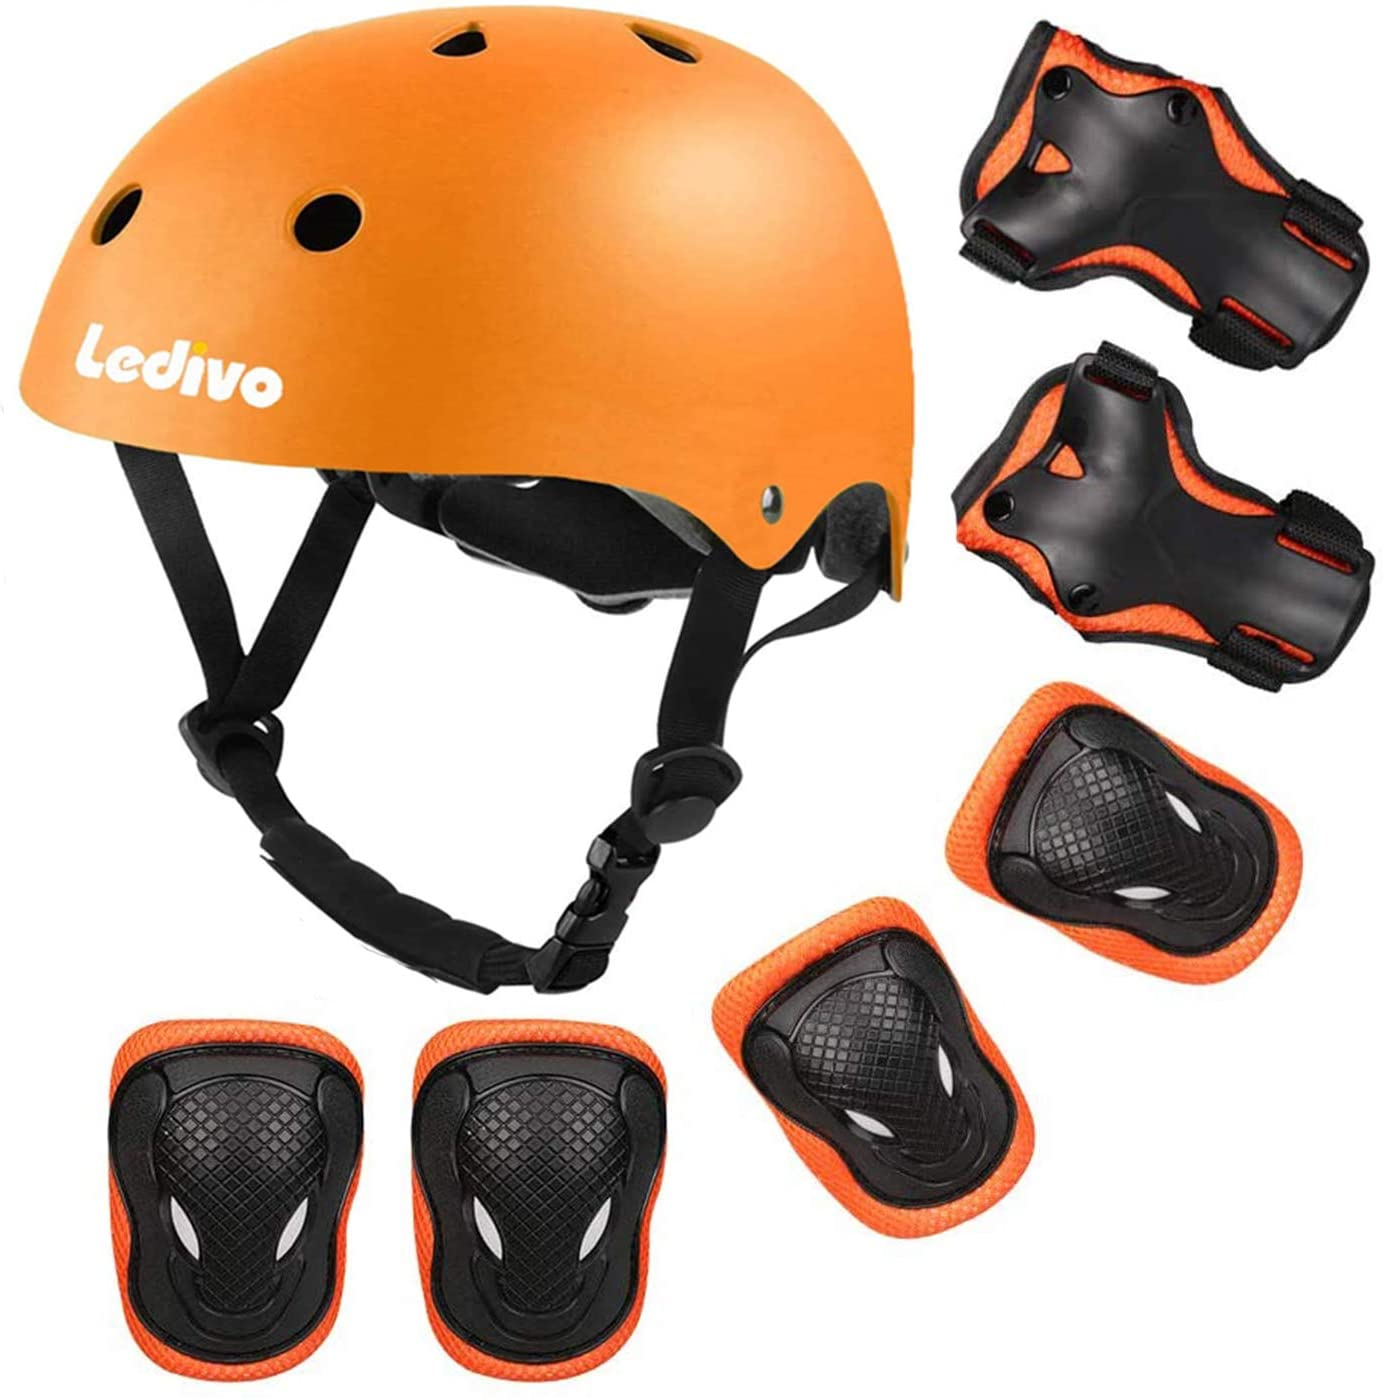 LEDIVO Kids Bike Helmet, Toddler Helmet for Ages 3-8 Boys Girls with Sports Protective Gear Set Knee Elbow Wrist Pads for Skateboard Cycling Scooter Rollerblading, CPSC Certified